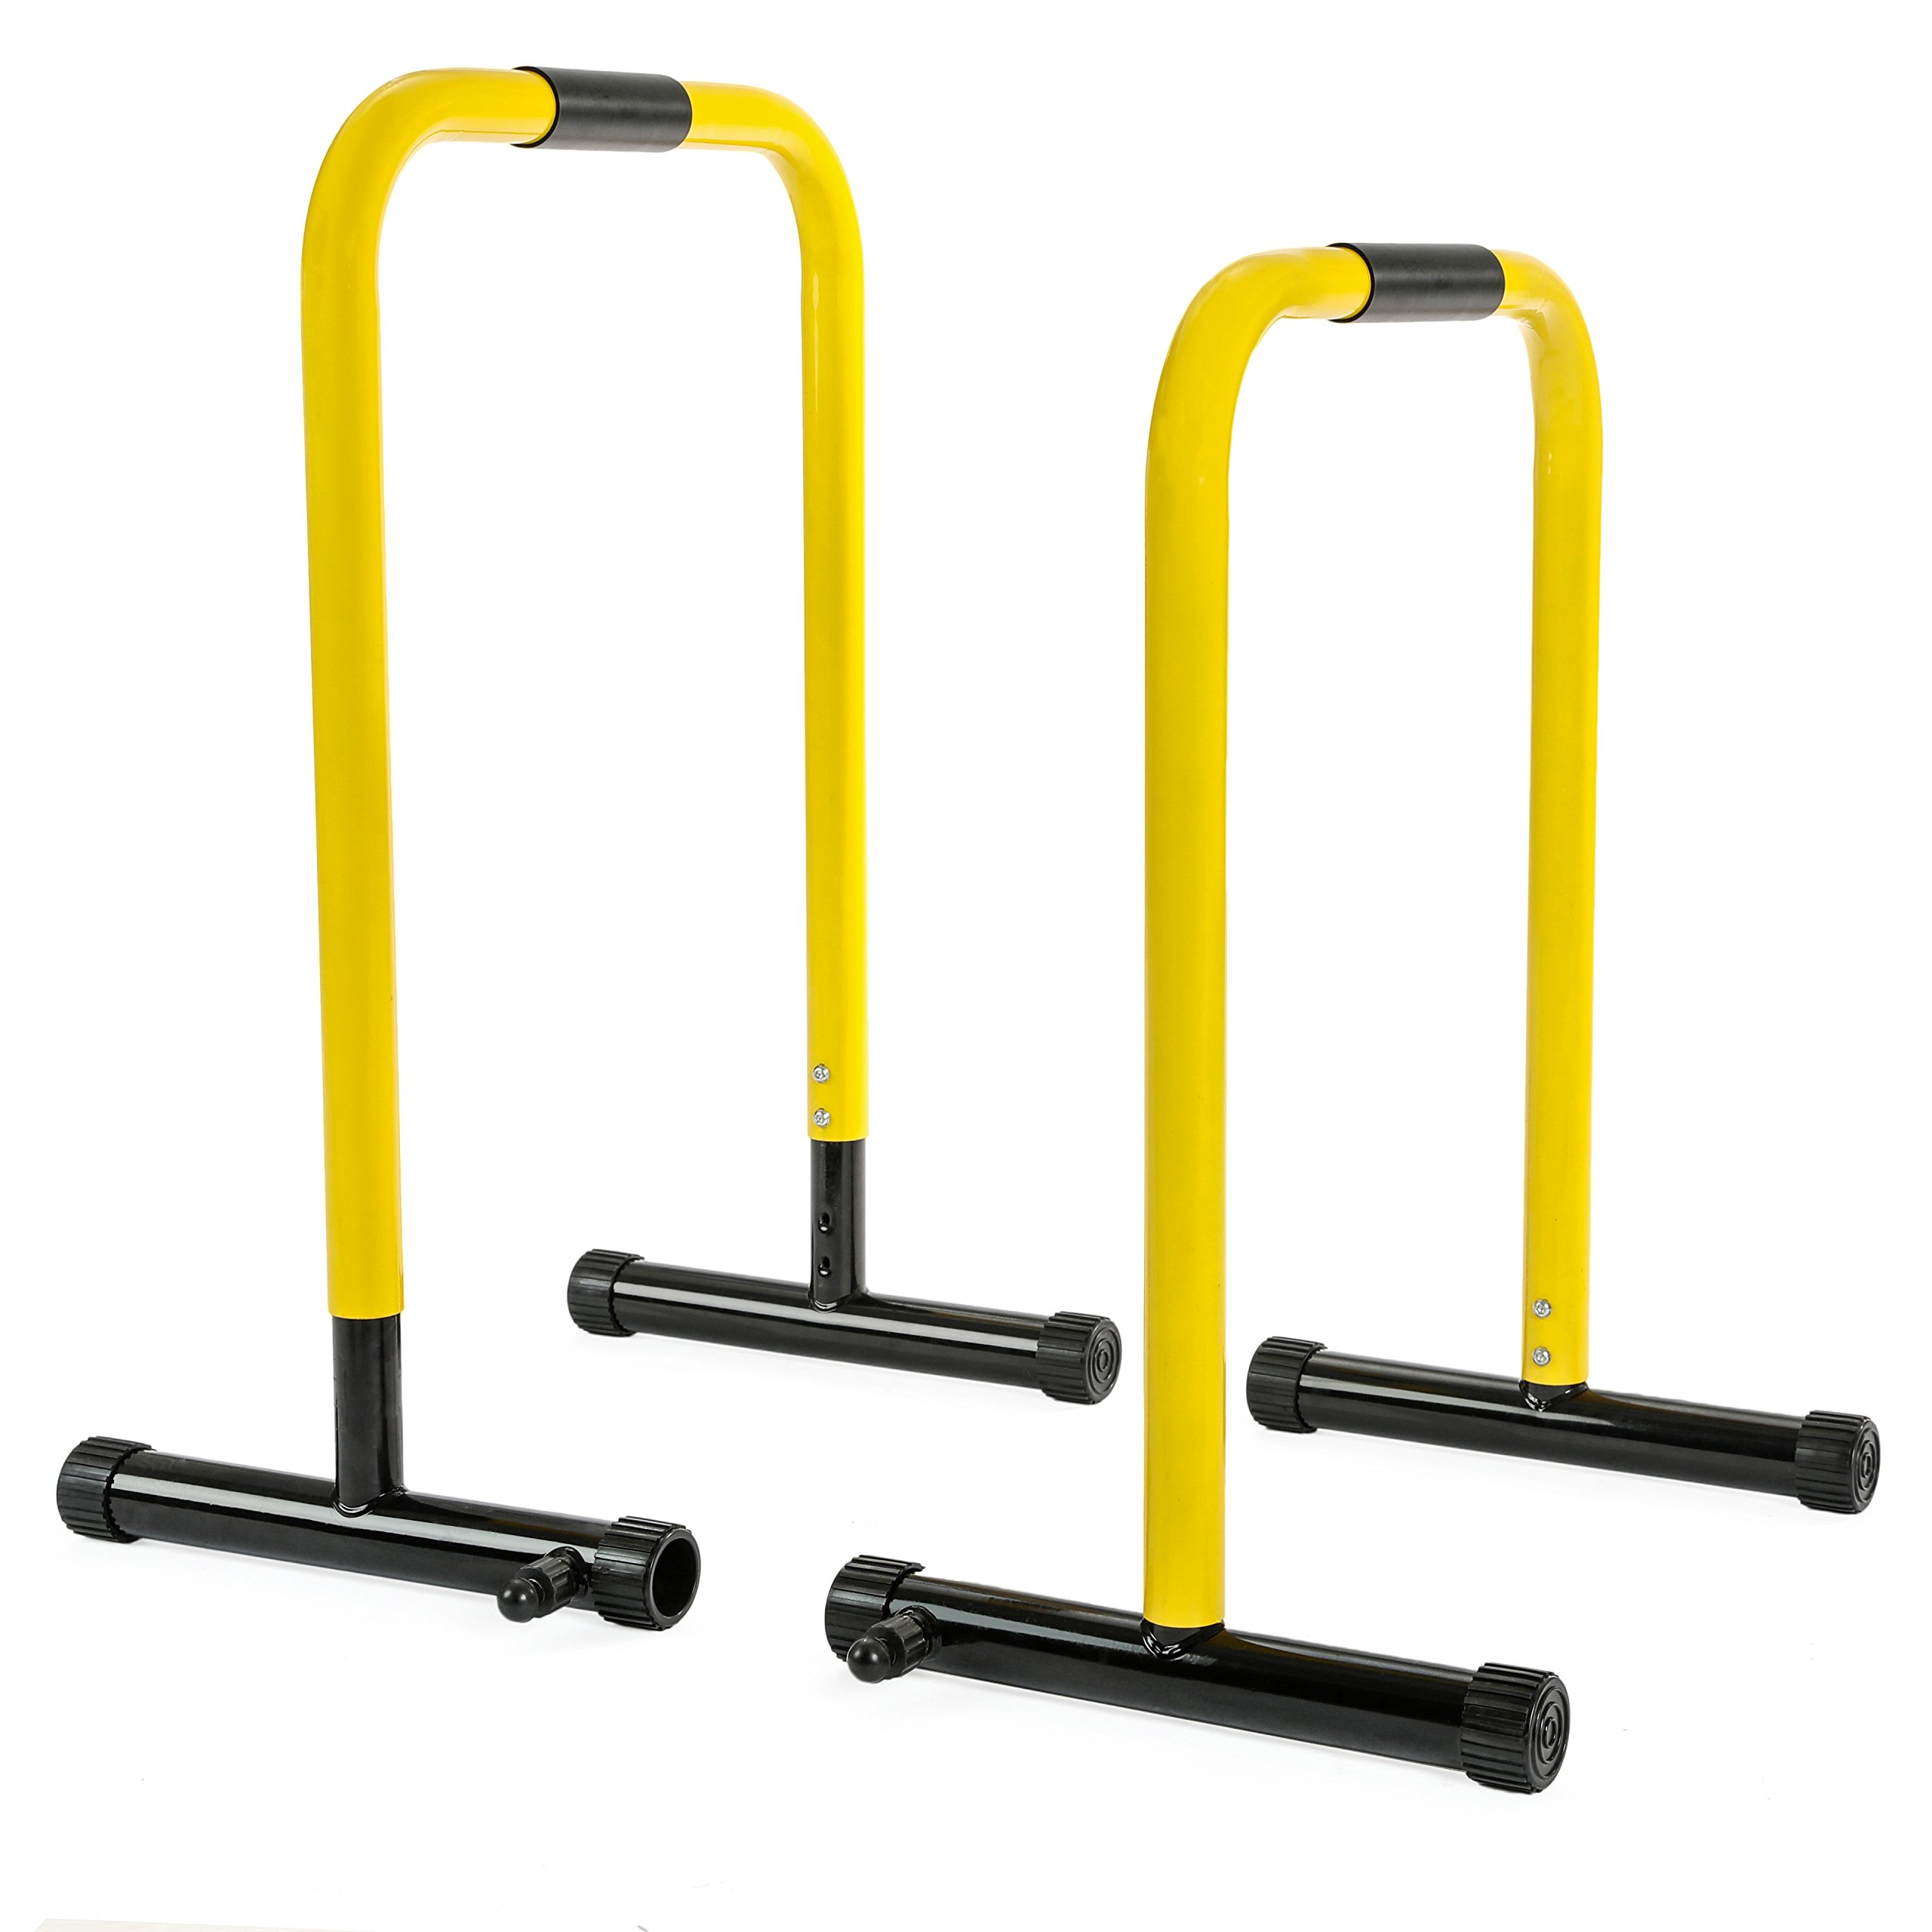 RELIFE REBUILD YOUR LIFE Dip Station Functional Heavy Duty Dip Stands Fitness Workout Dip bar Station Stabilizer Parallette Push Up Stand by RELIFE REBUILD YOUR LIFE (Image #7)